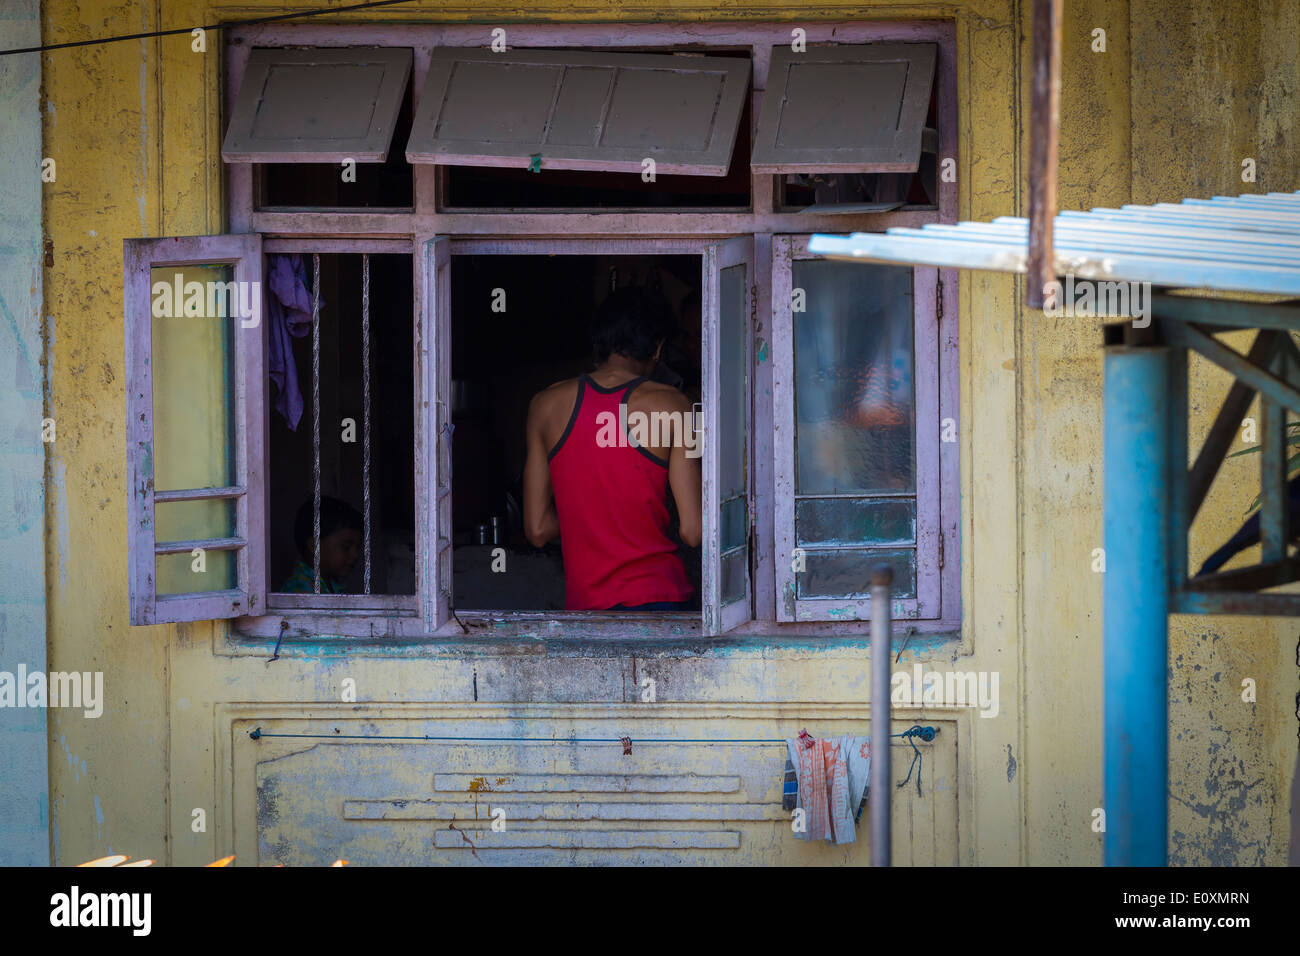 Man stood in a red vest with his back to an open window, Mumbai India - Stock Image